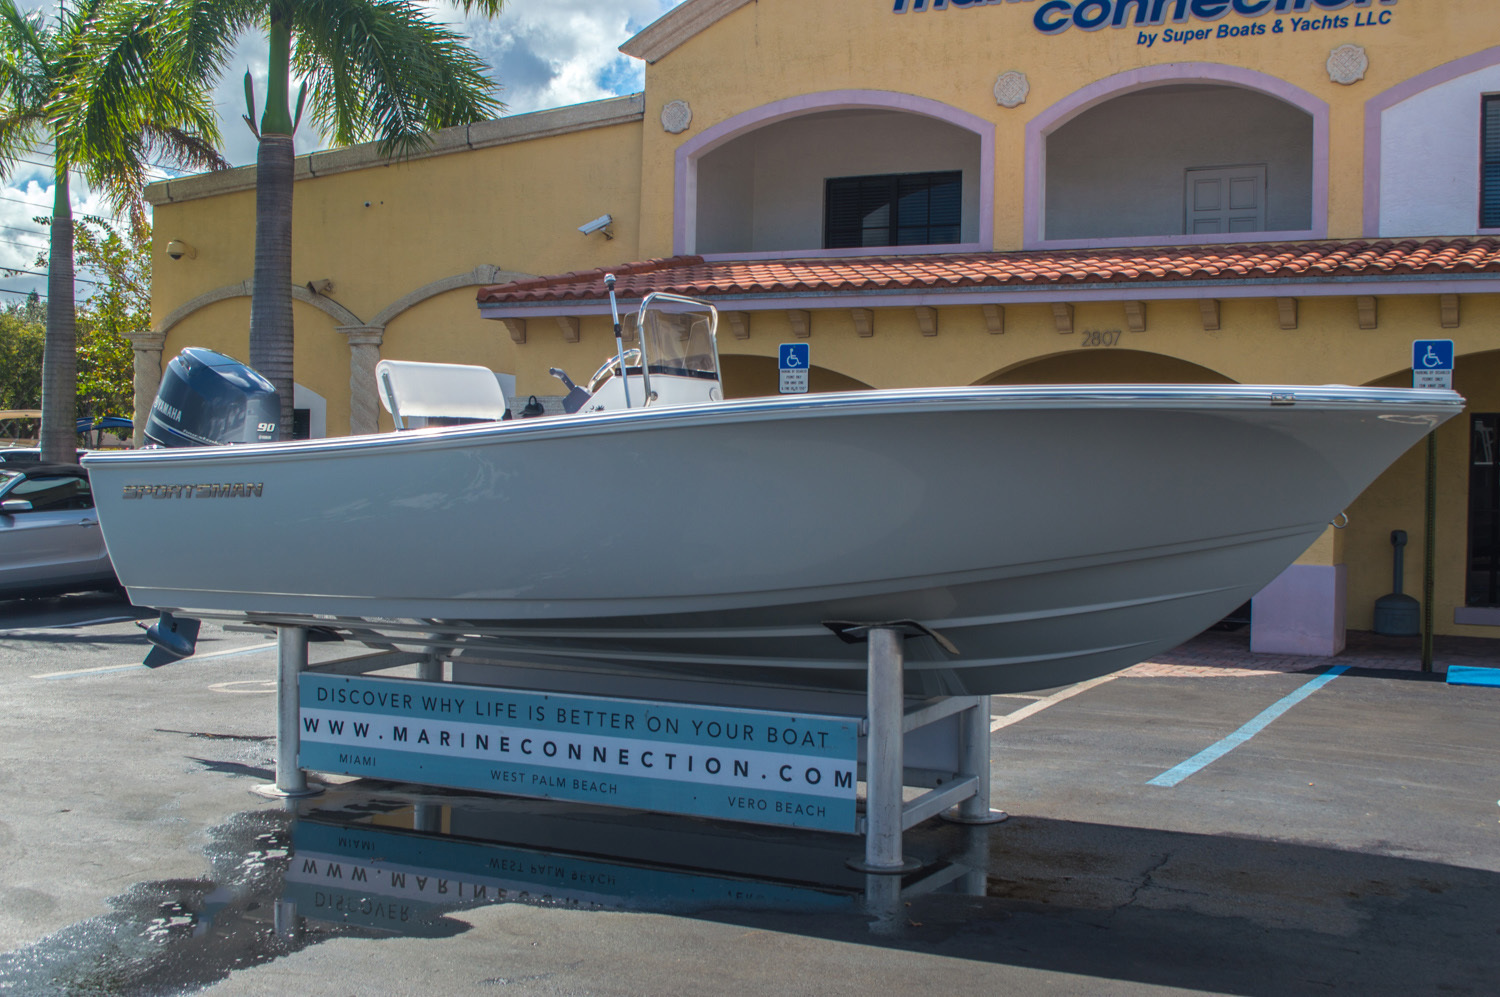 Thumbnail 1 for New 2016 Sportsman 19 Island Reef boat for sale in West Palm Beach, FL